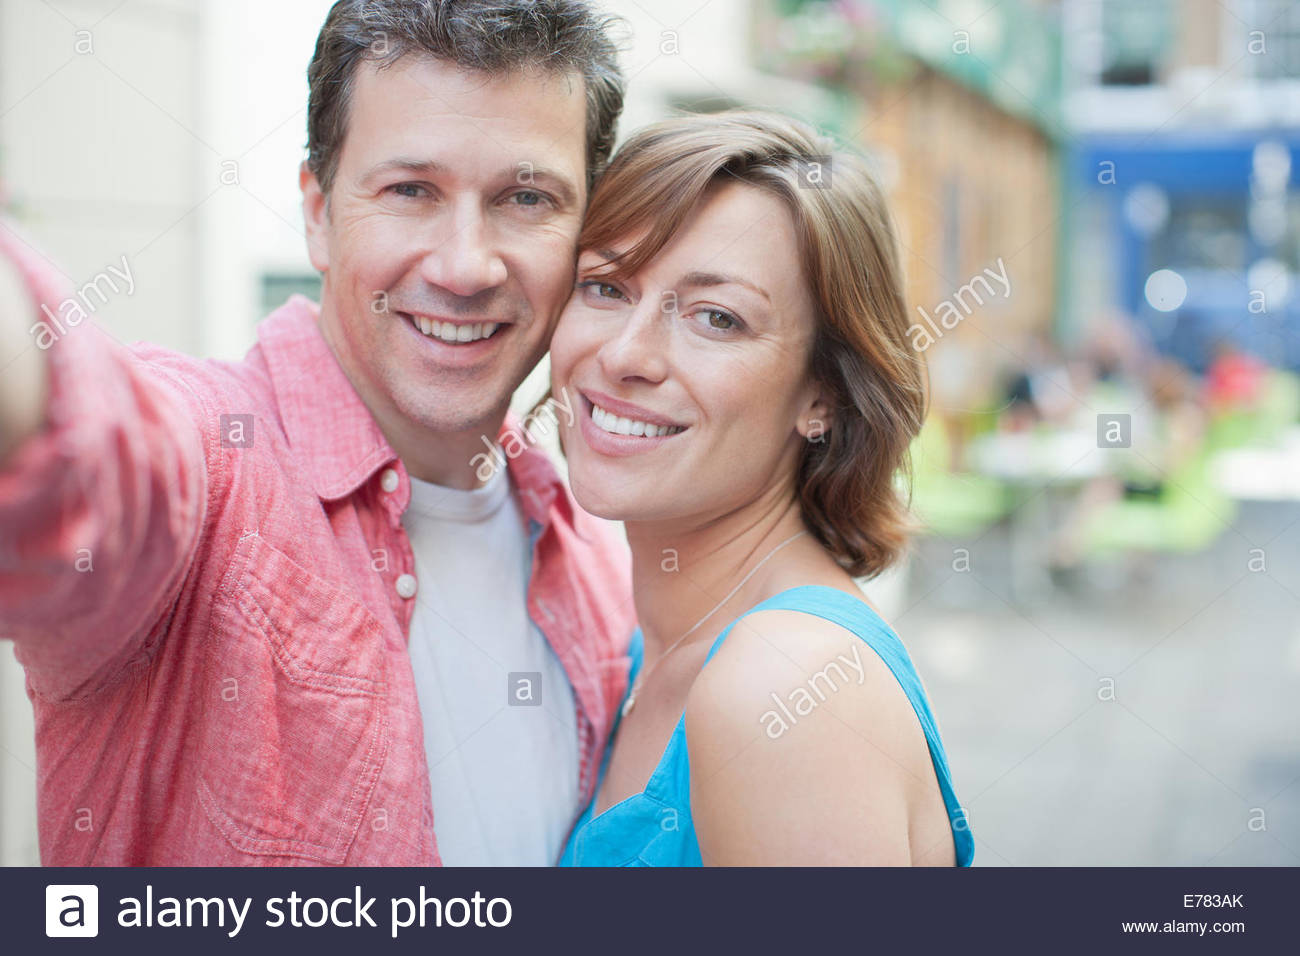 Playful couple smiling outdoors Photo Stock